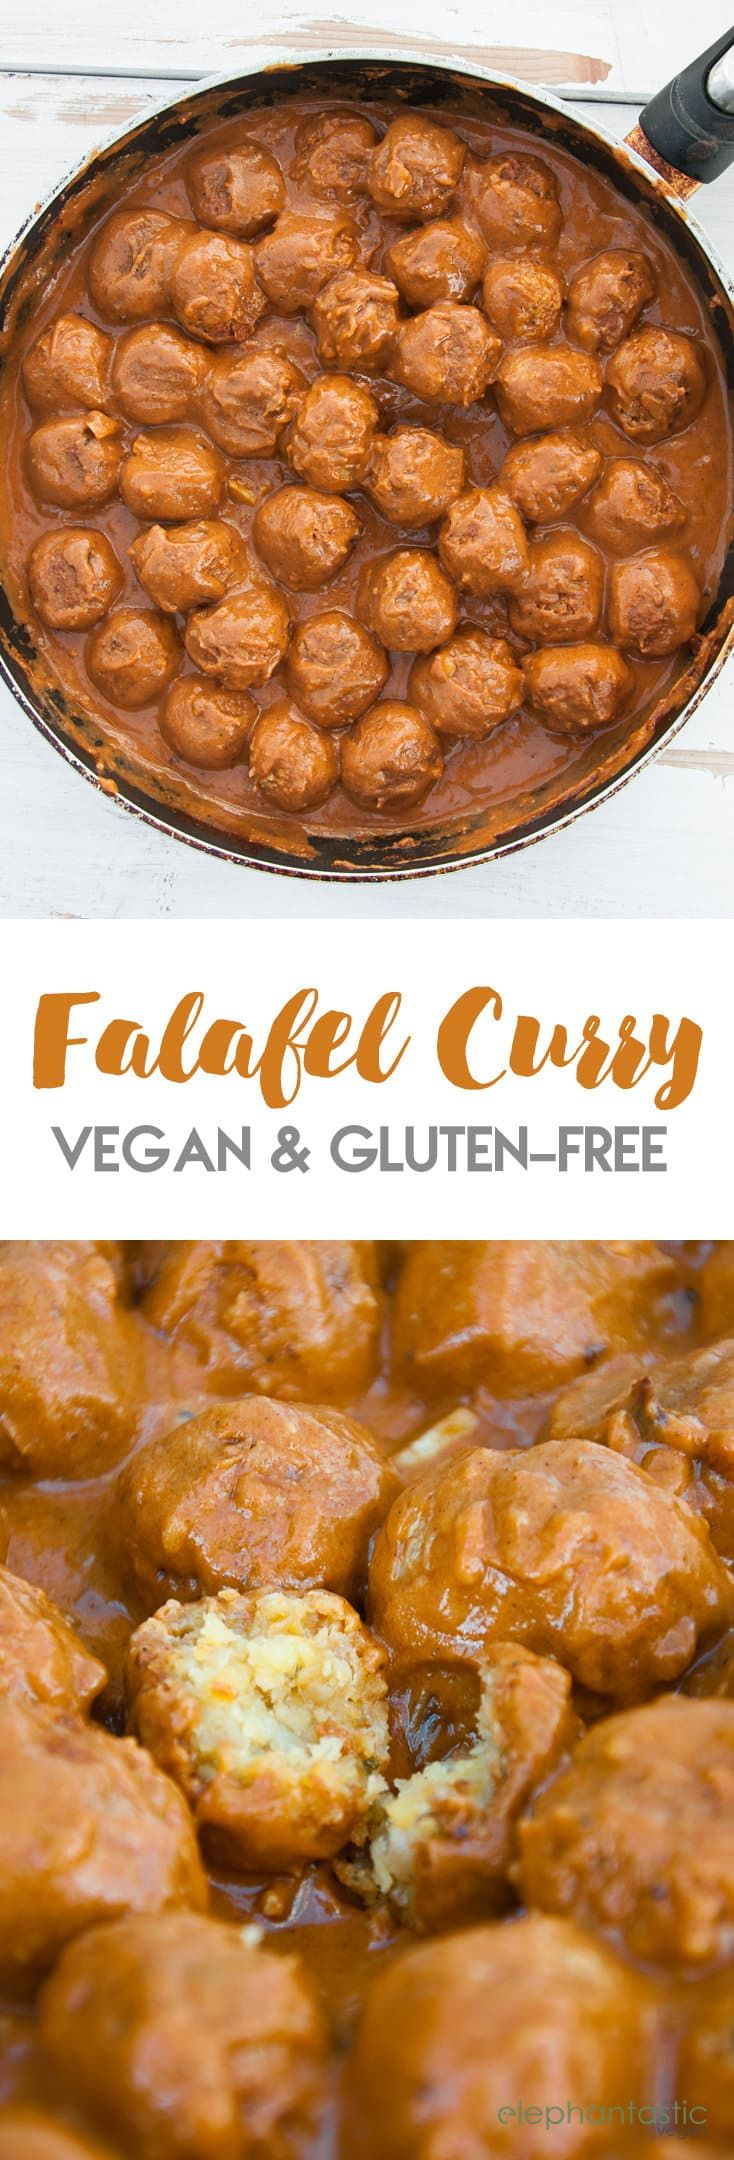 Photo of Vegan Falafel Curry via Elephantastic Vegan